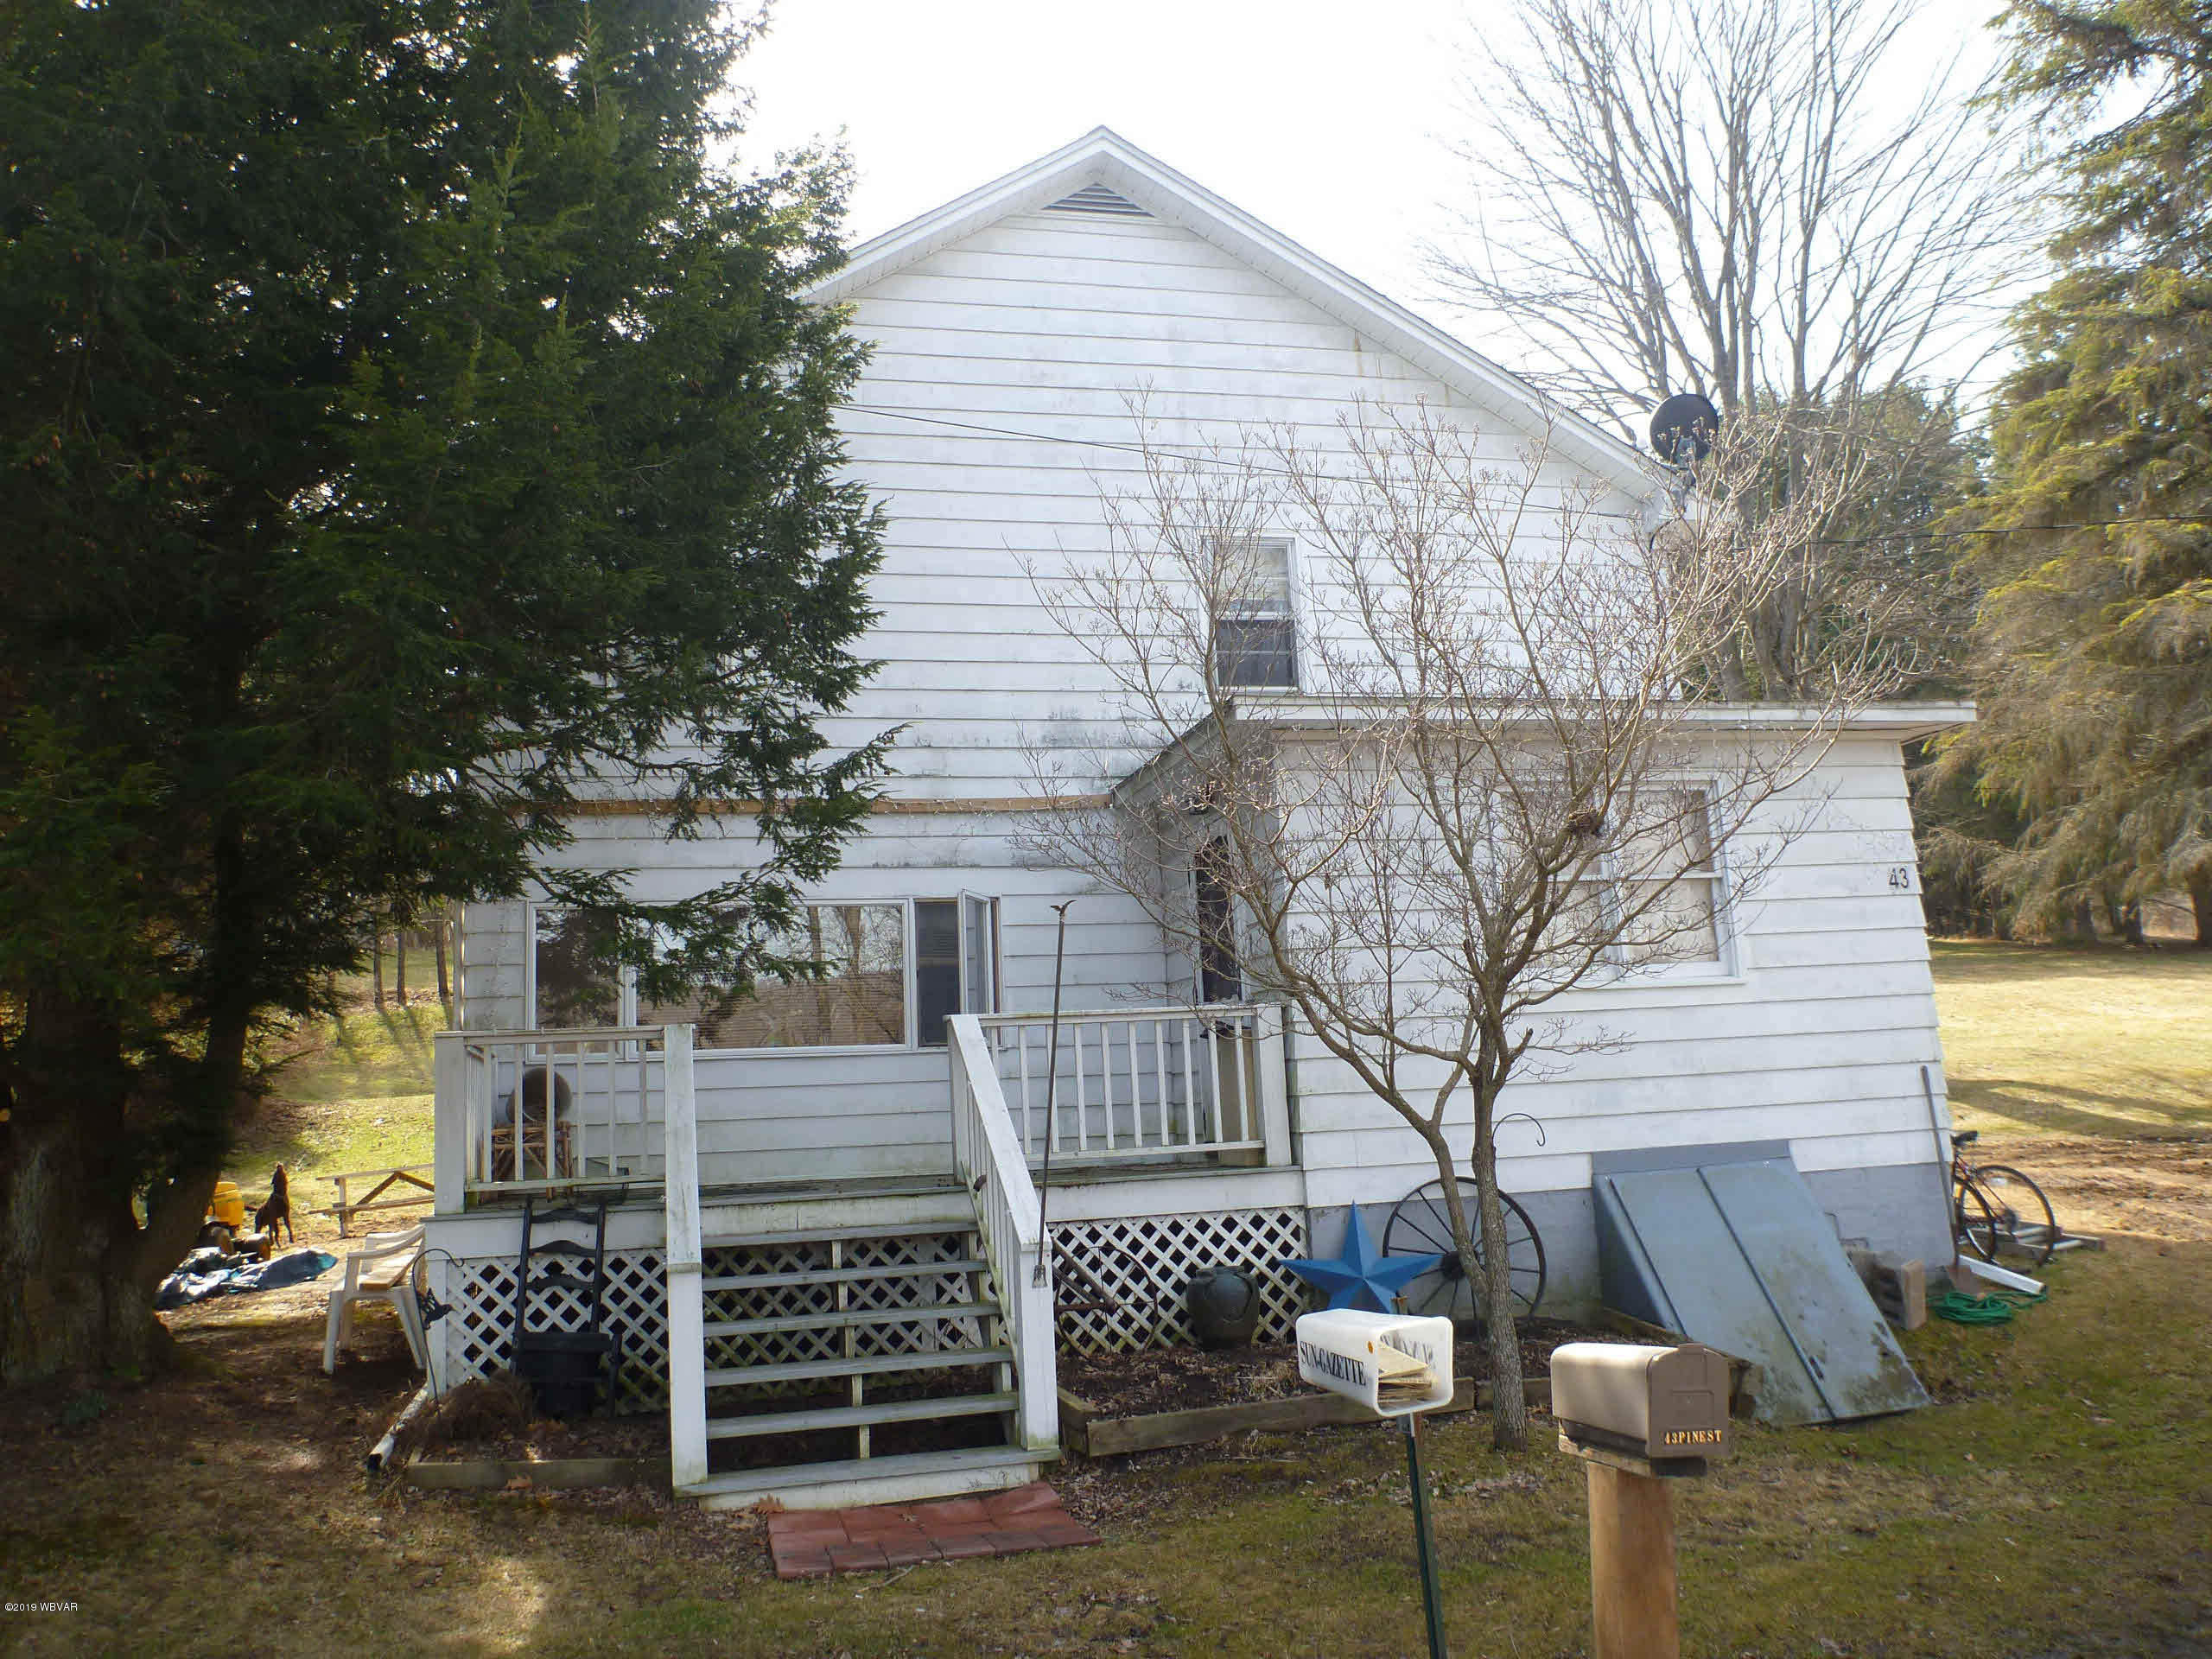 43 PINE STREET, Blossburg, PA 16912, 5 Bedrooms Bedrooms, ,1 BathroomBathrooms,Residential,For sale,PINE,WB-86420